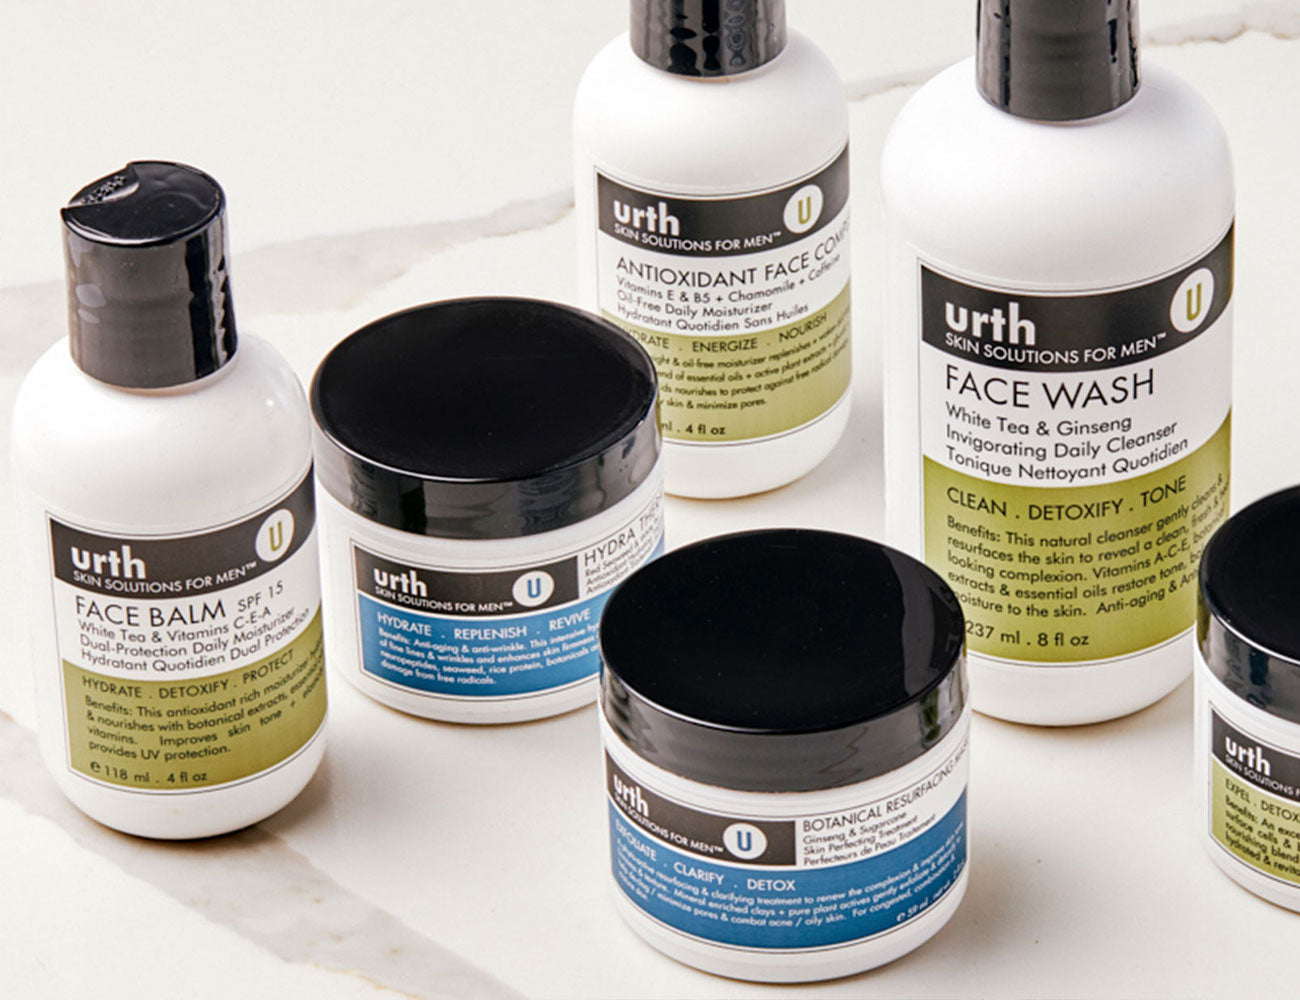 10 Questions With Bob Mah, Founder Of urth Skincare For Men